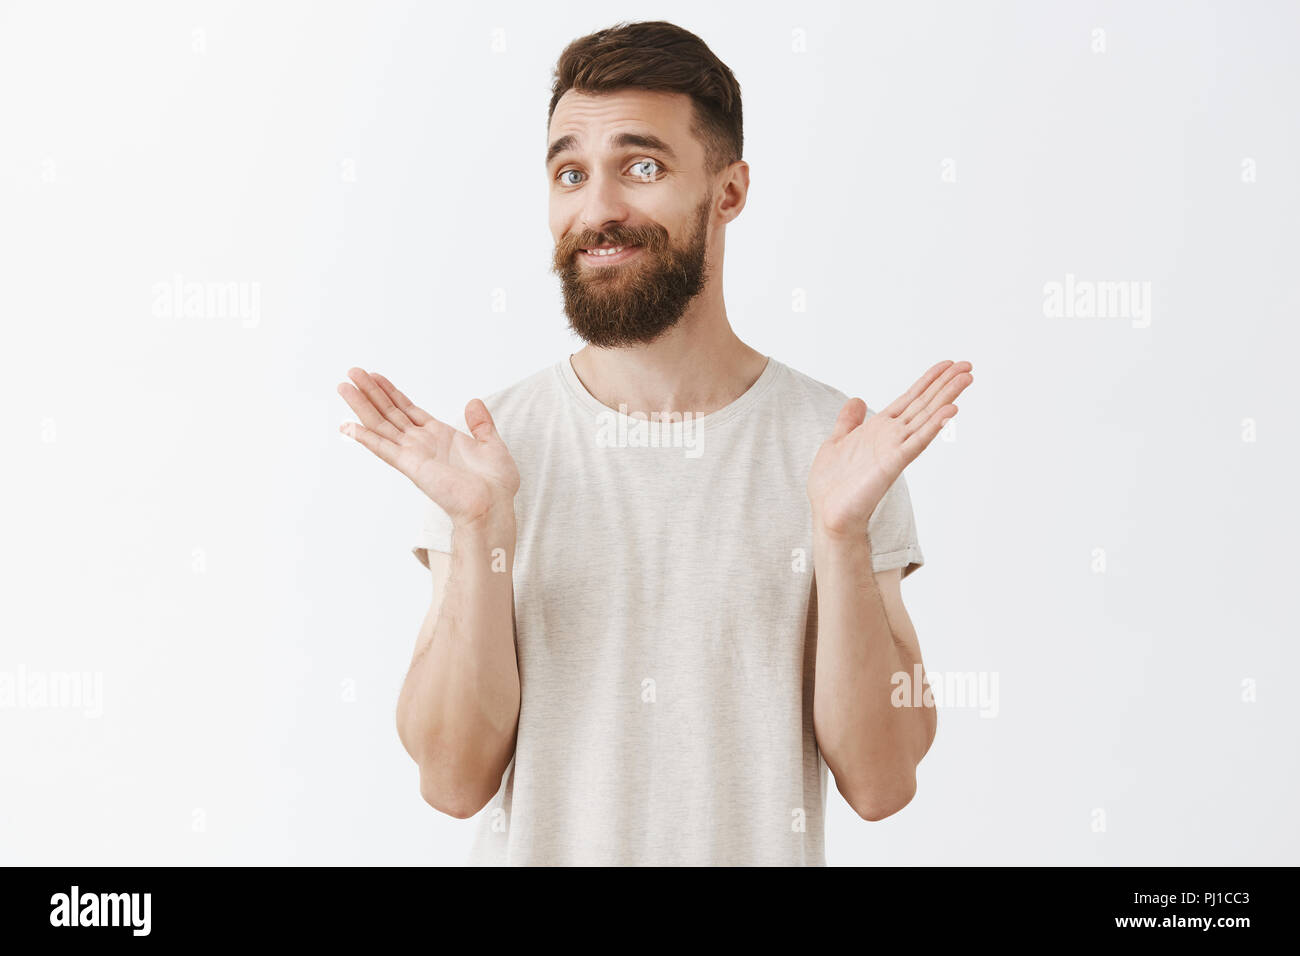 Portrait of tricky careless and stylish handsome male with long hipster beard raising palms and shrugging in unaware gesture having no clue about topic and smiling indifferently over gray background - Stock Image